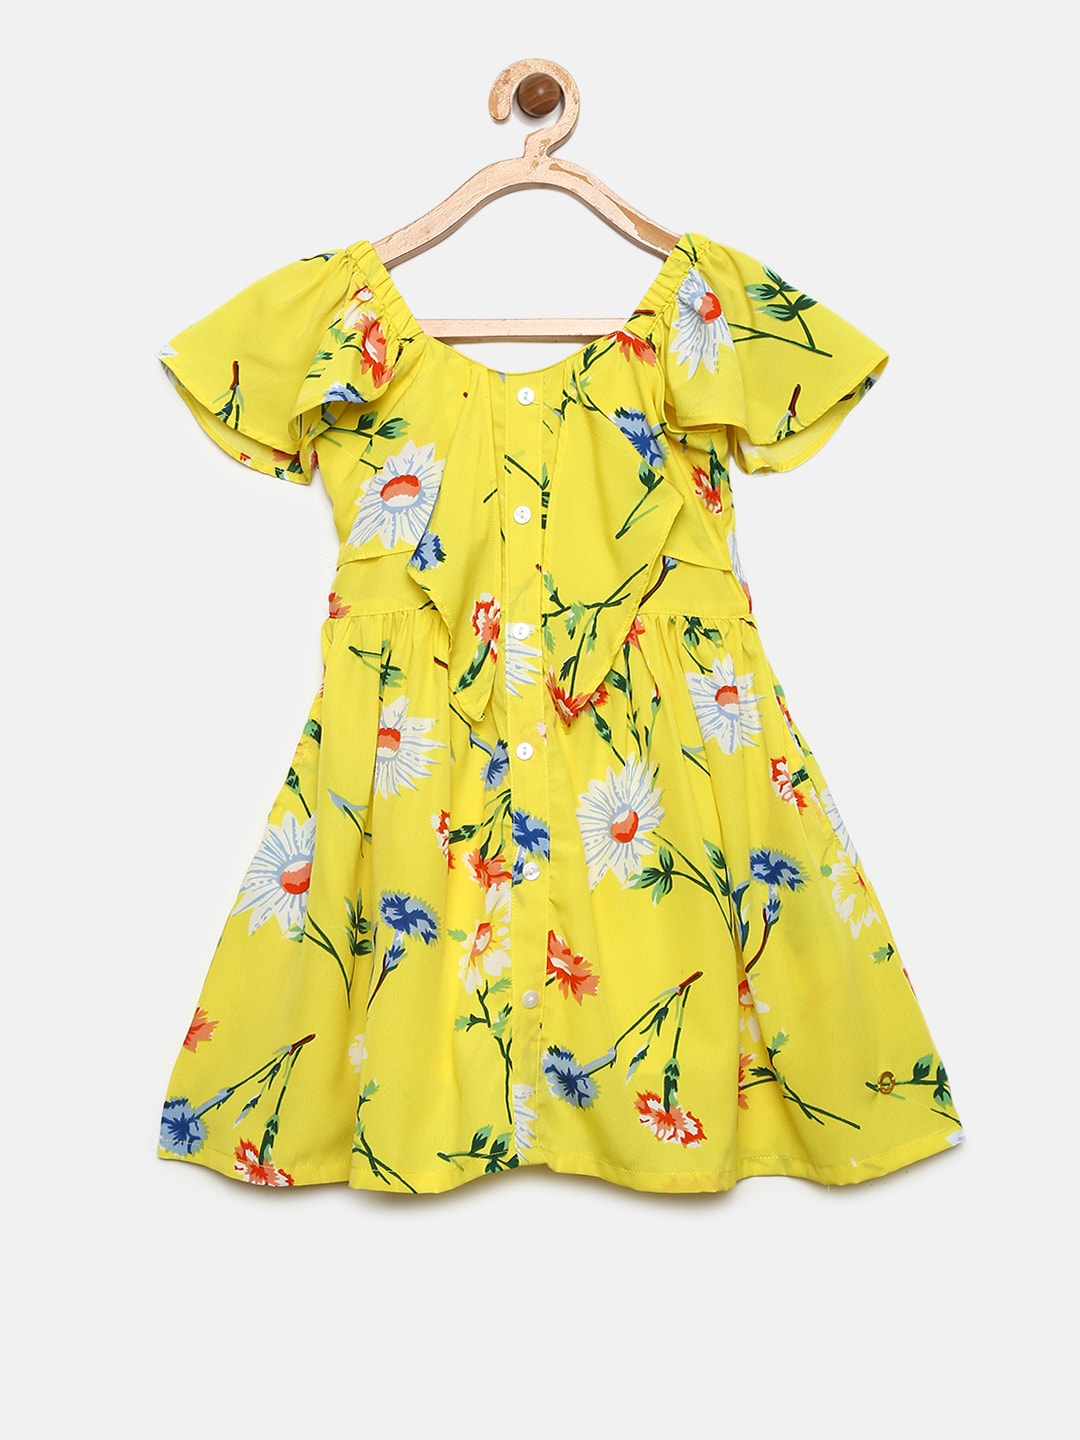 a57423250c0 Baby Dresses - Buy Dress for Babies Online at Best Price